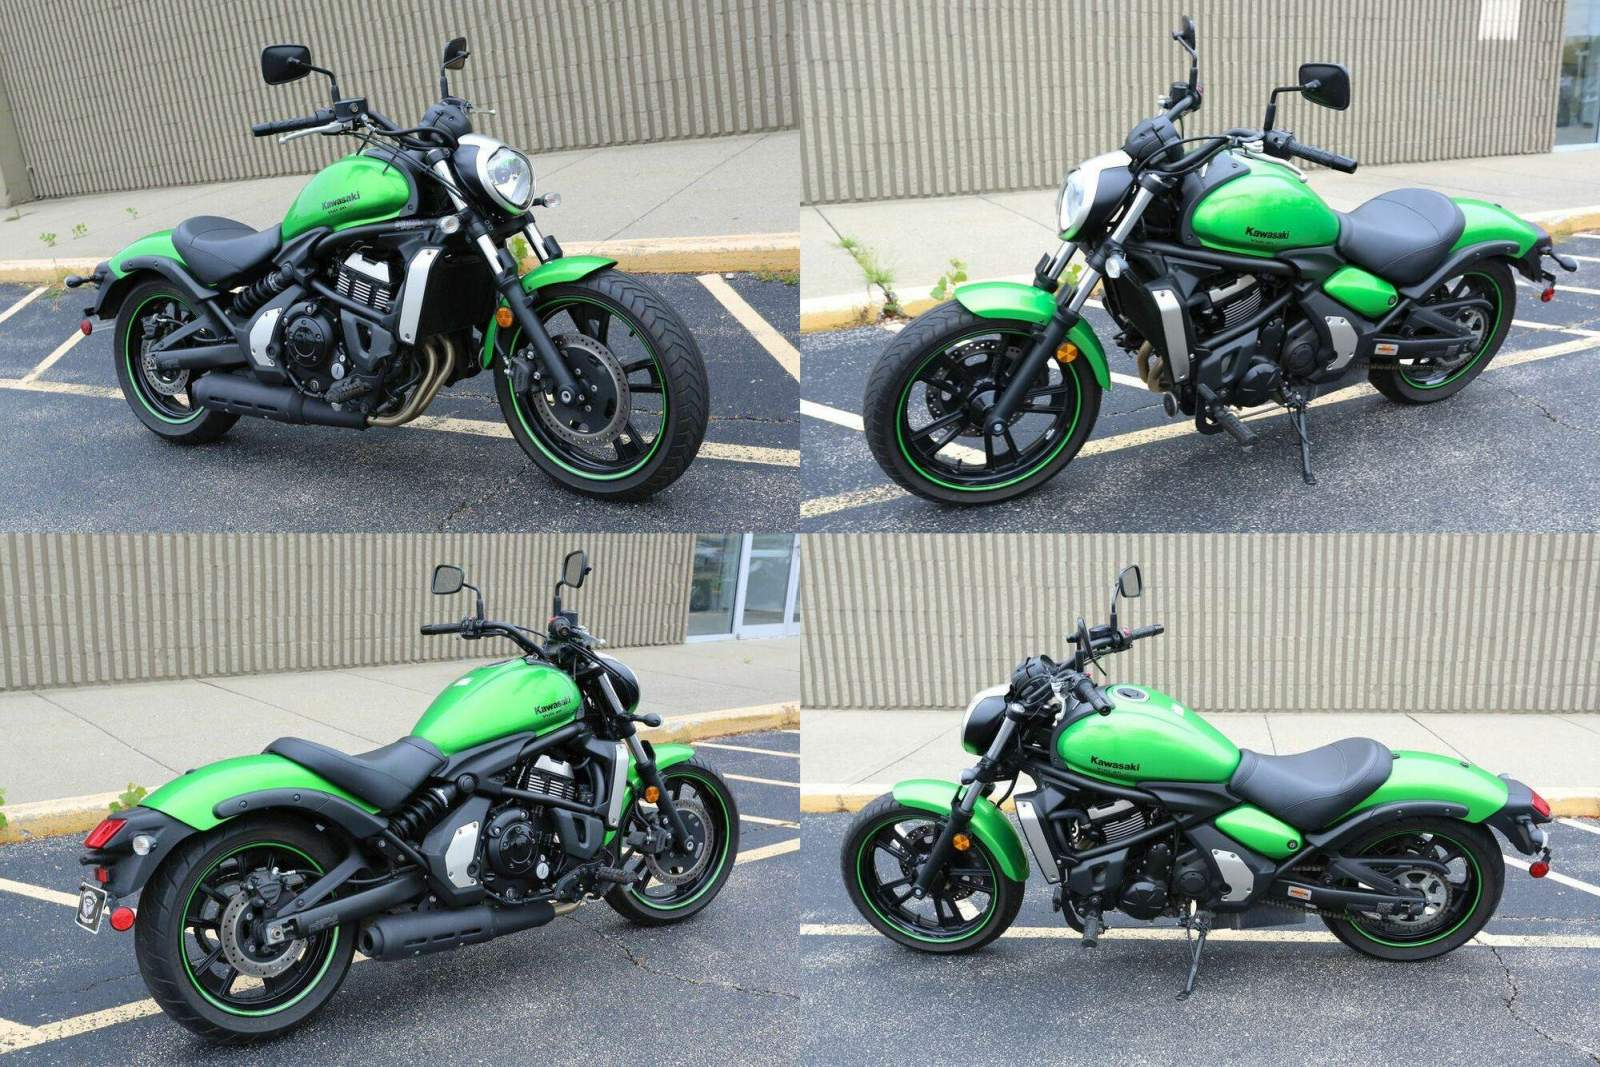 2015 Kawasaki VULCAN S 650 Green used for sale